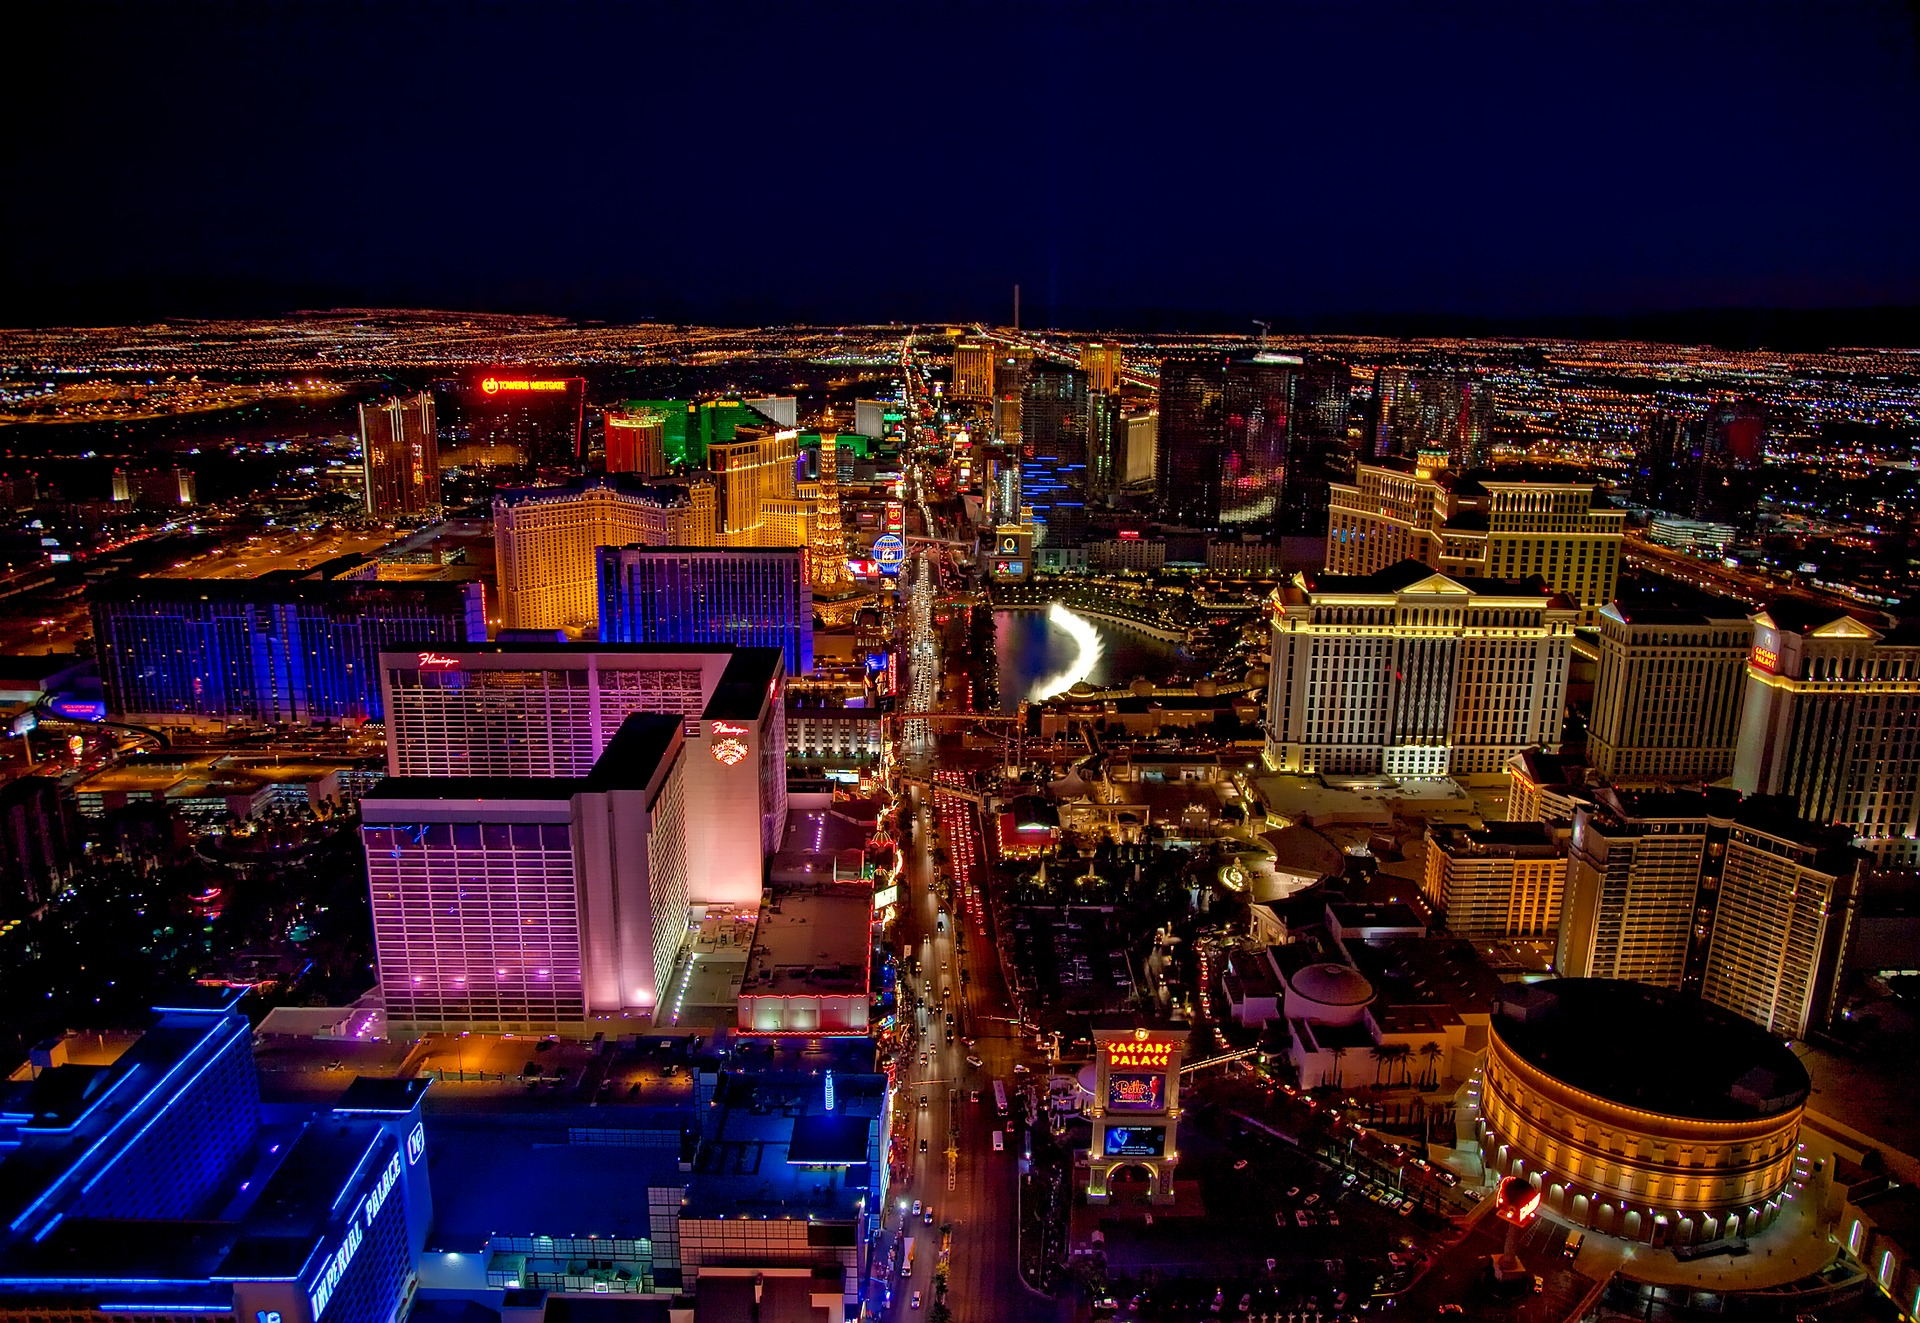 Las Vegas comes to life when the sun goes down.